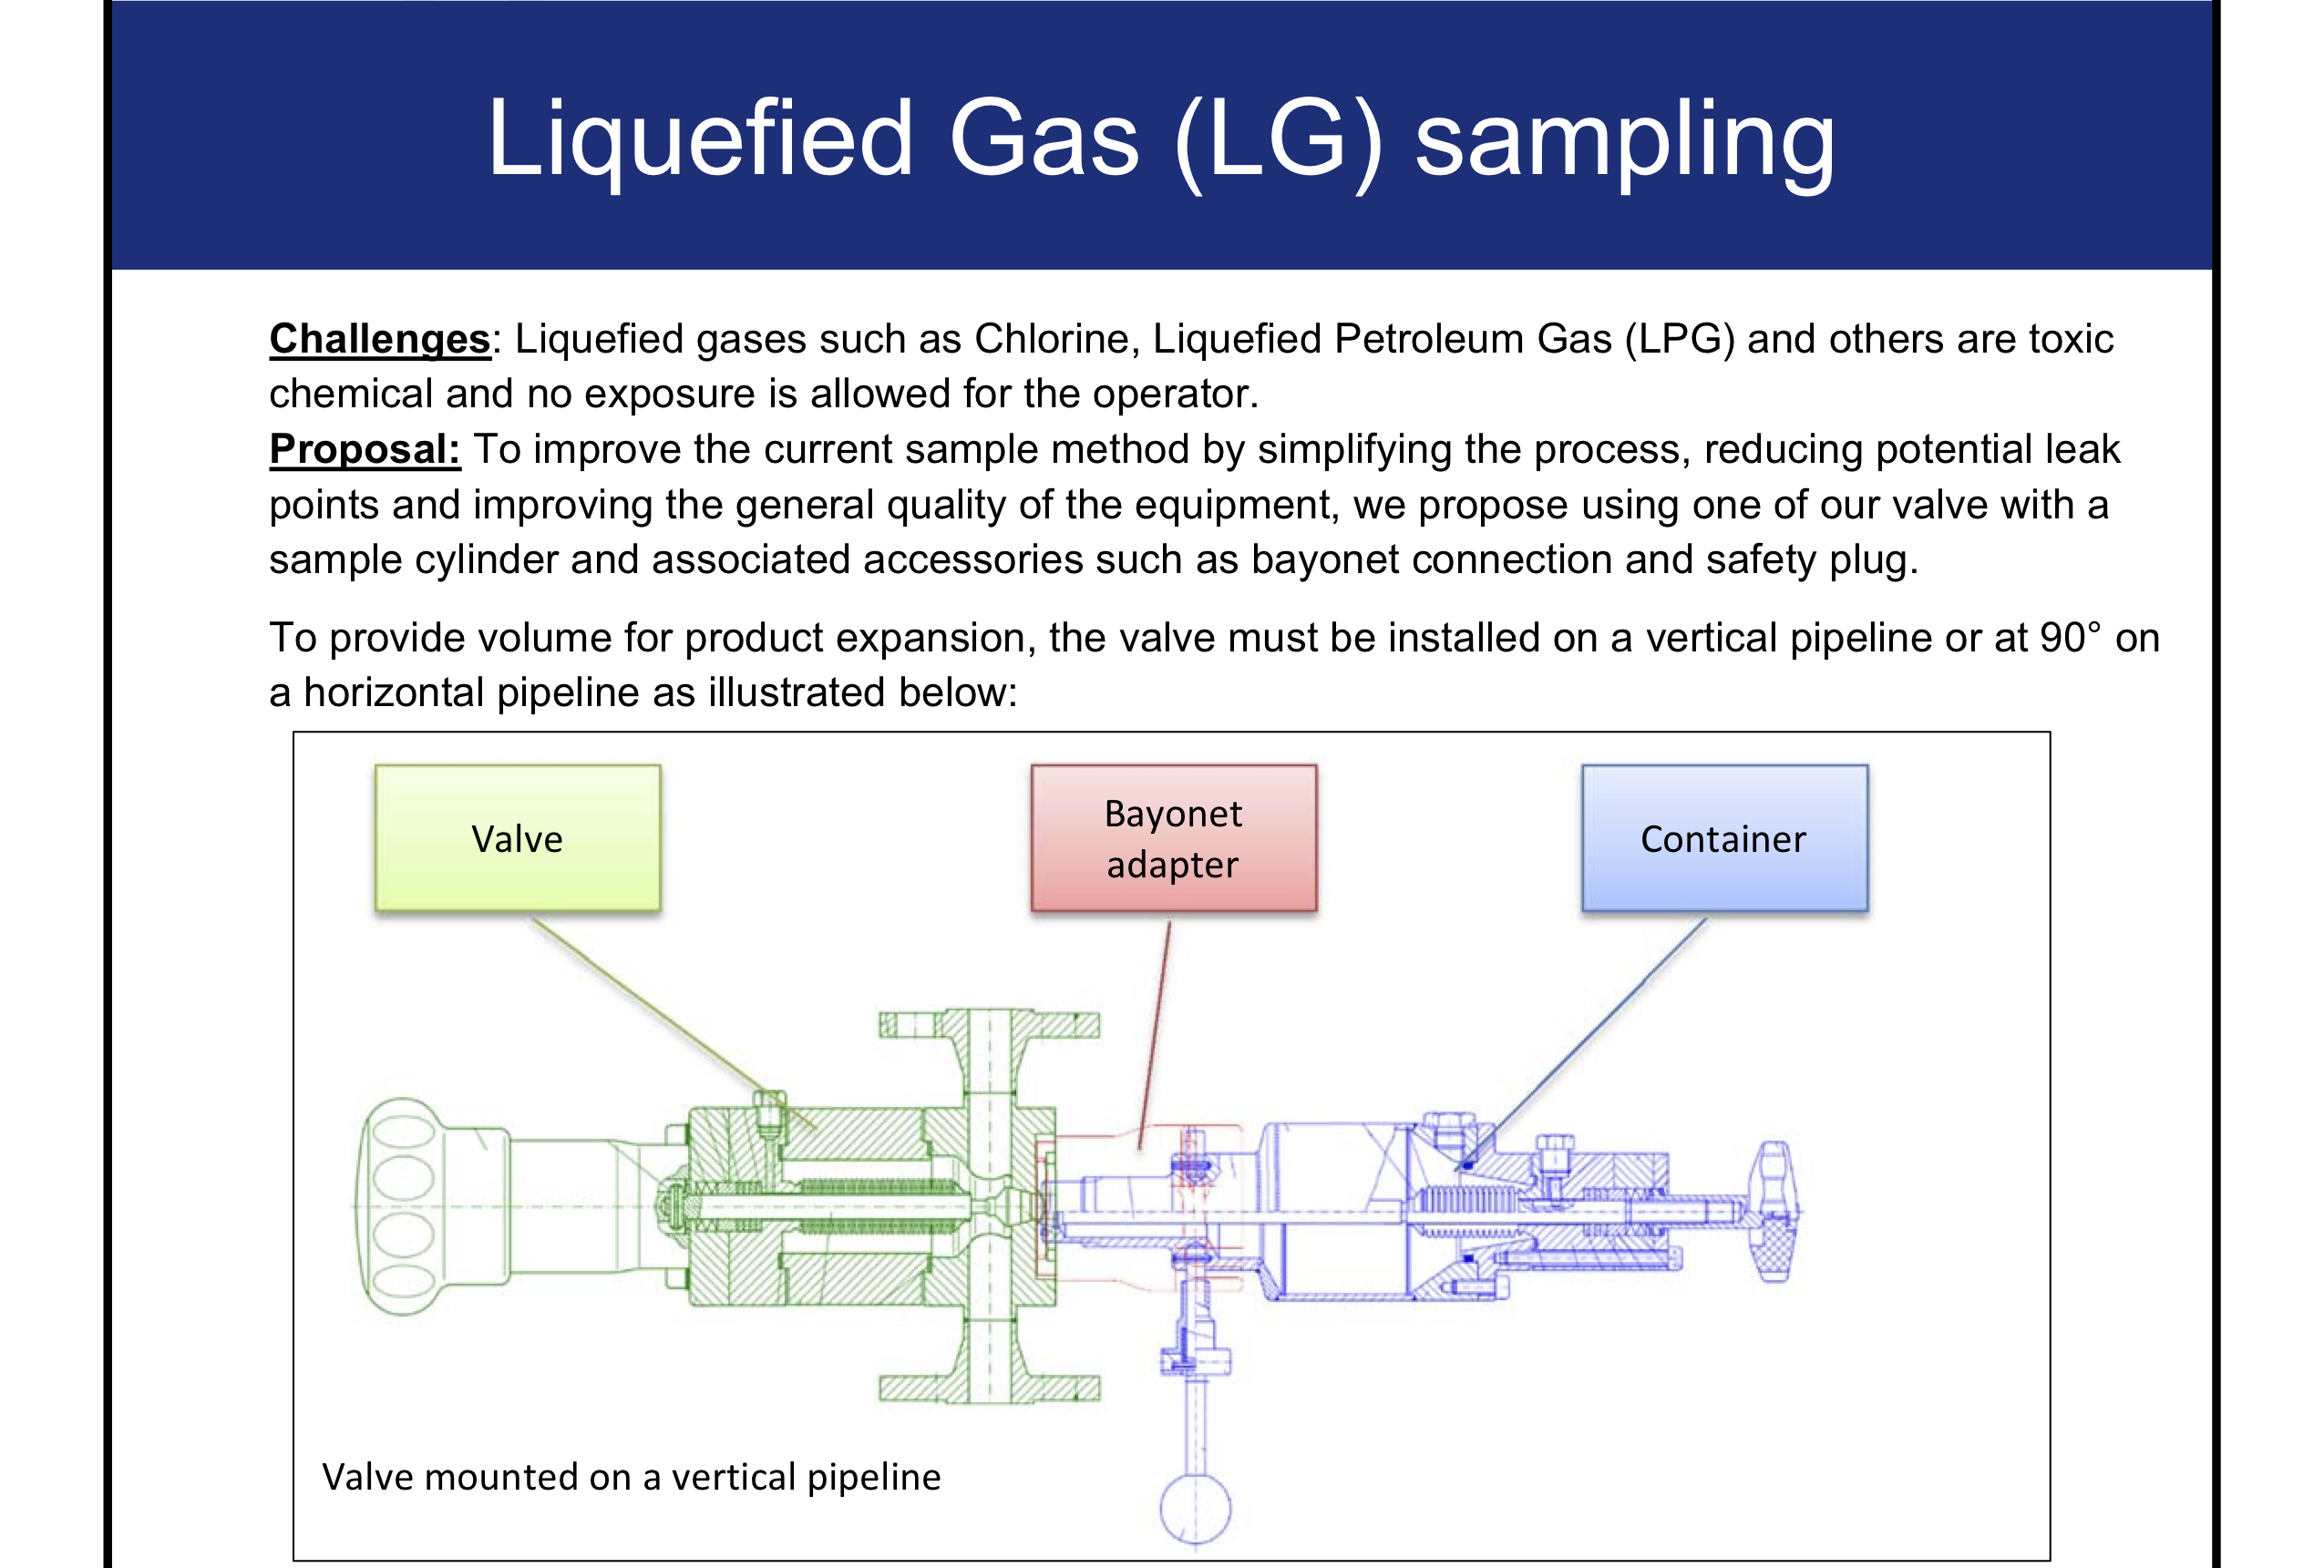 White paper on Liquefied Gas (LG) sampling